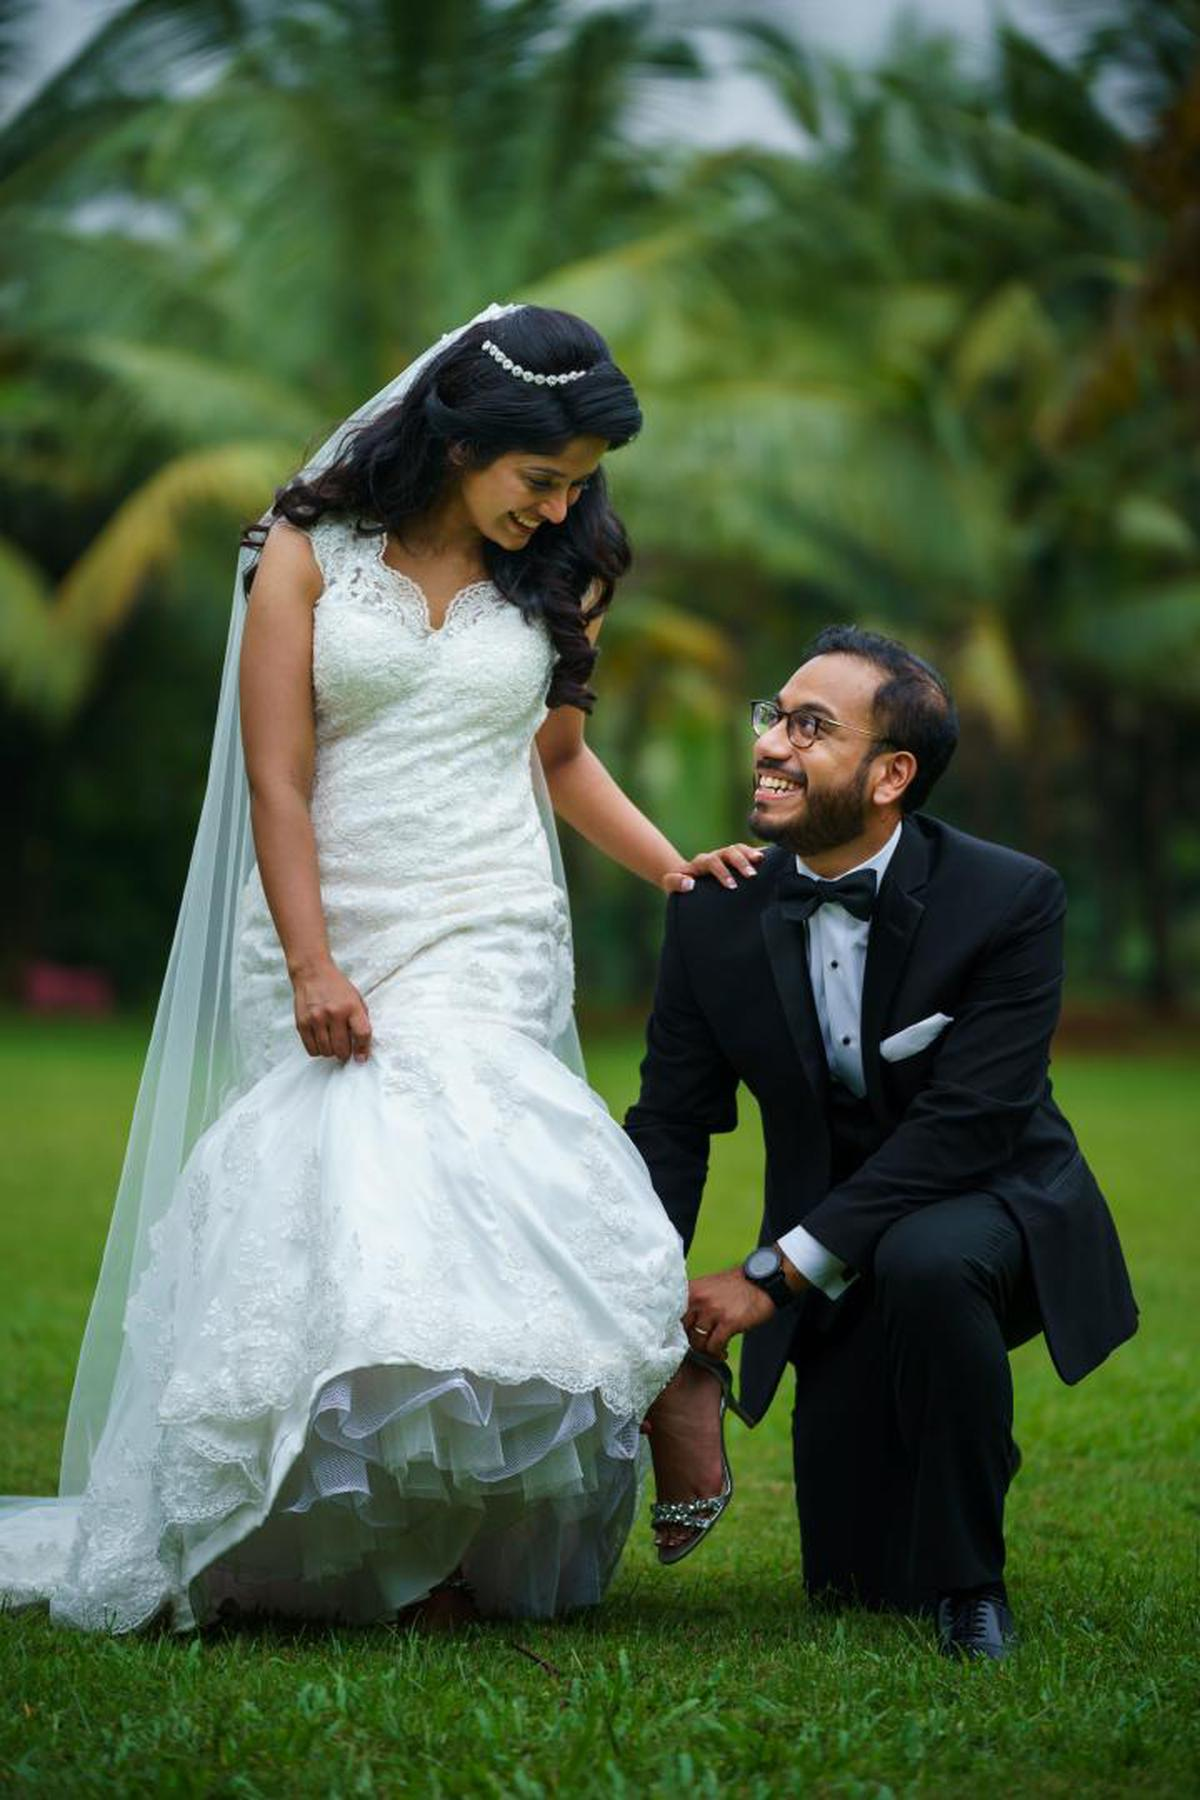 Image of Photograph, Bride, Wedding dress, Marriage, Dress, Gown etc.